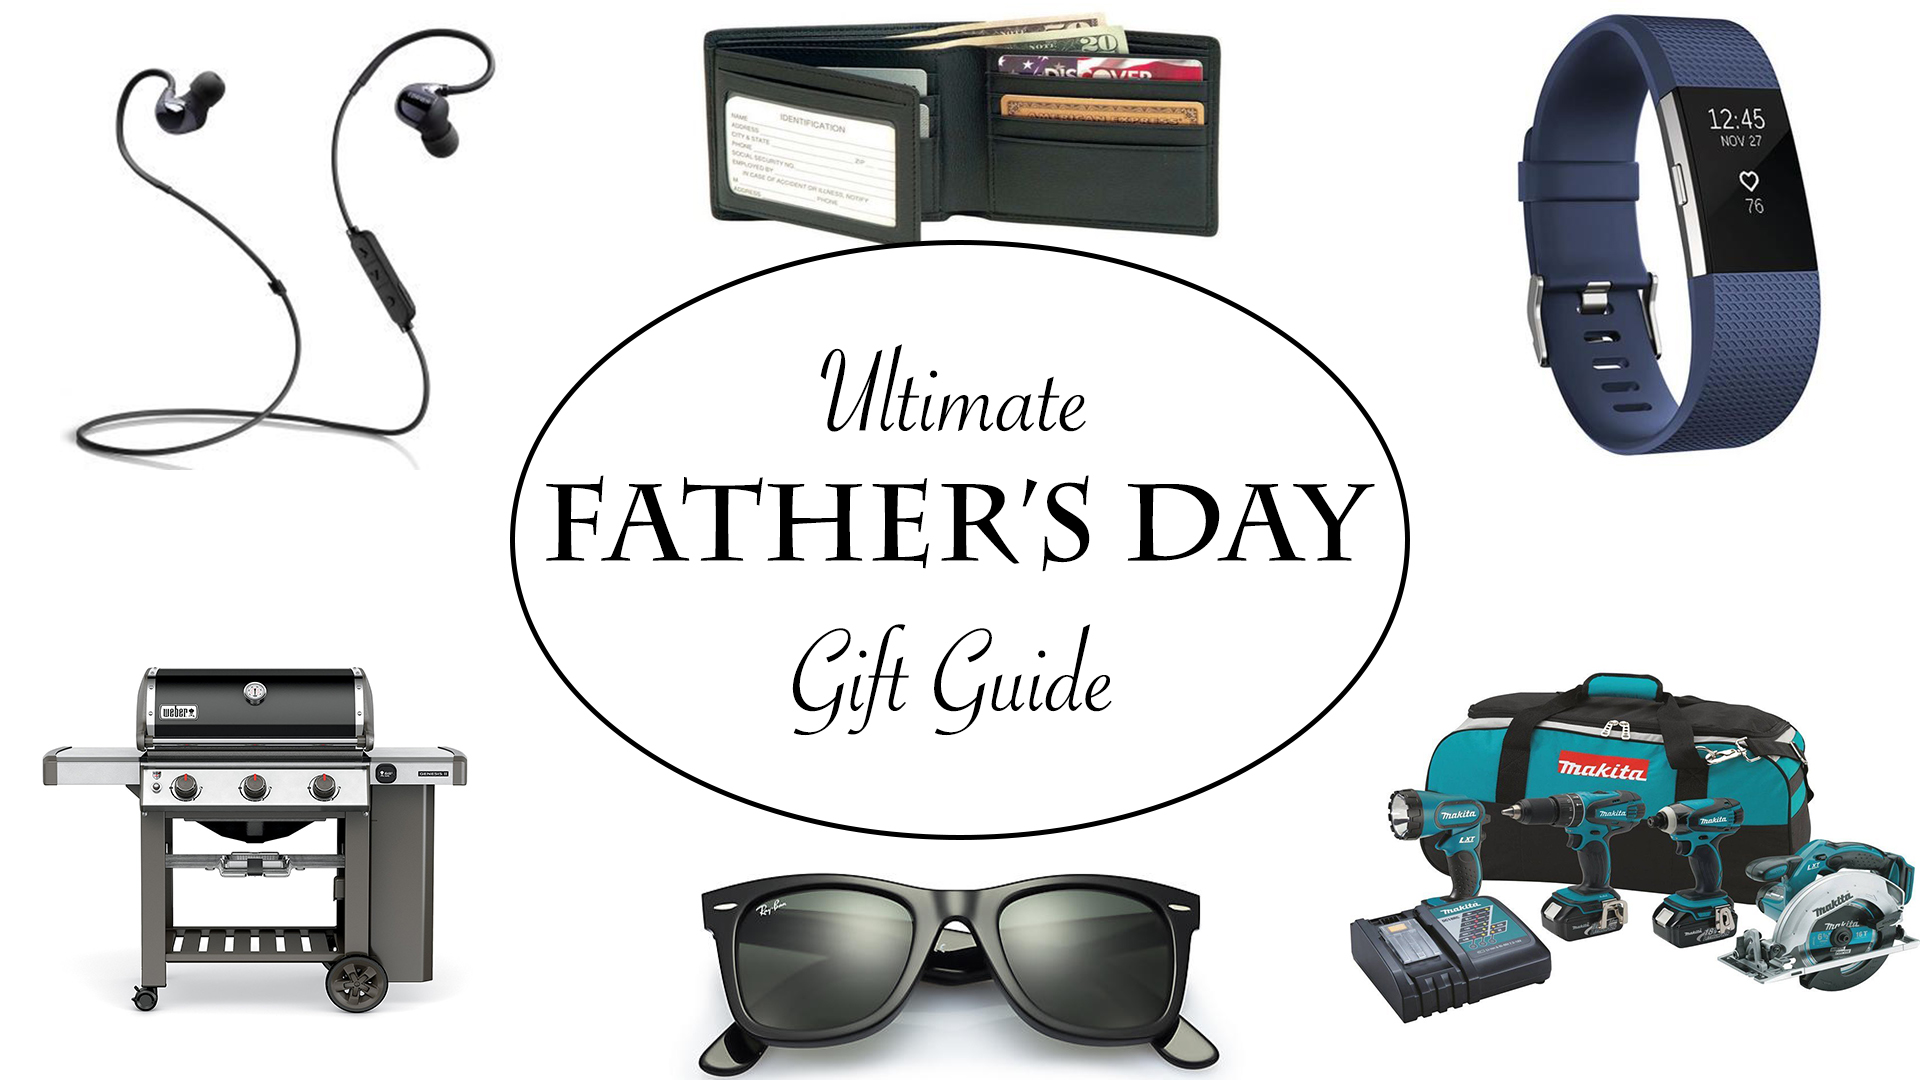 Ultimate Father's Day Gift Guide 2017